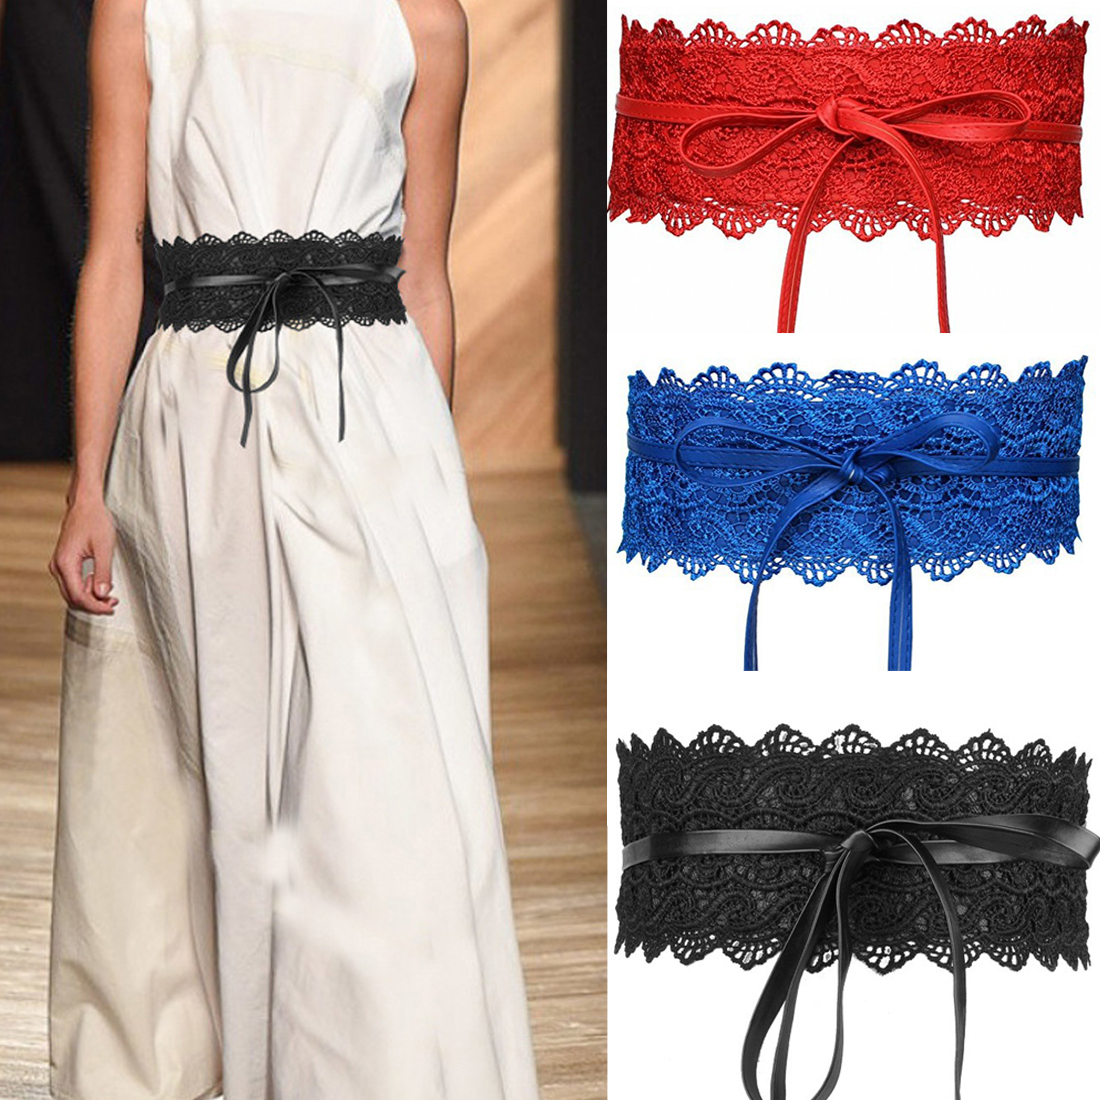 Fashion Women Dress Bowknot Faux Leather Lace Wide Decor Belt Elastic Girdle Waist Band Sweet Solid Belt Dress Accessory